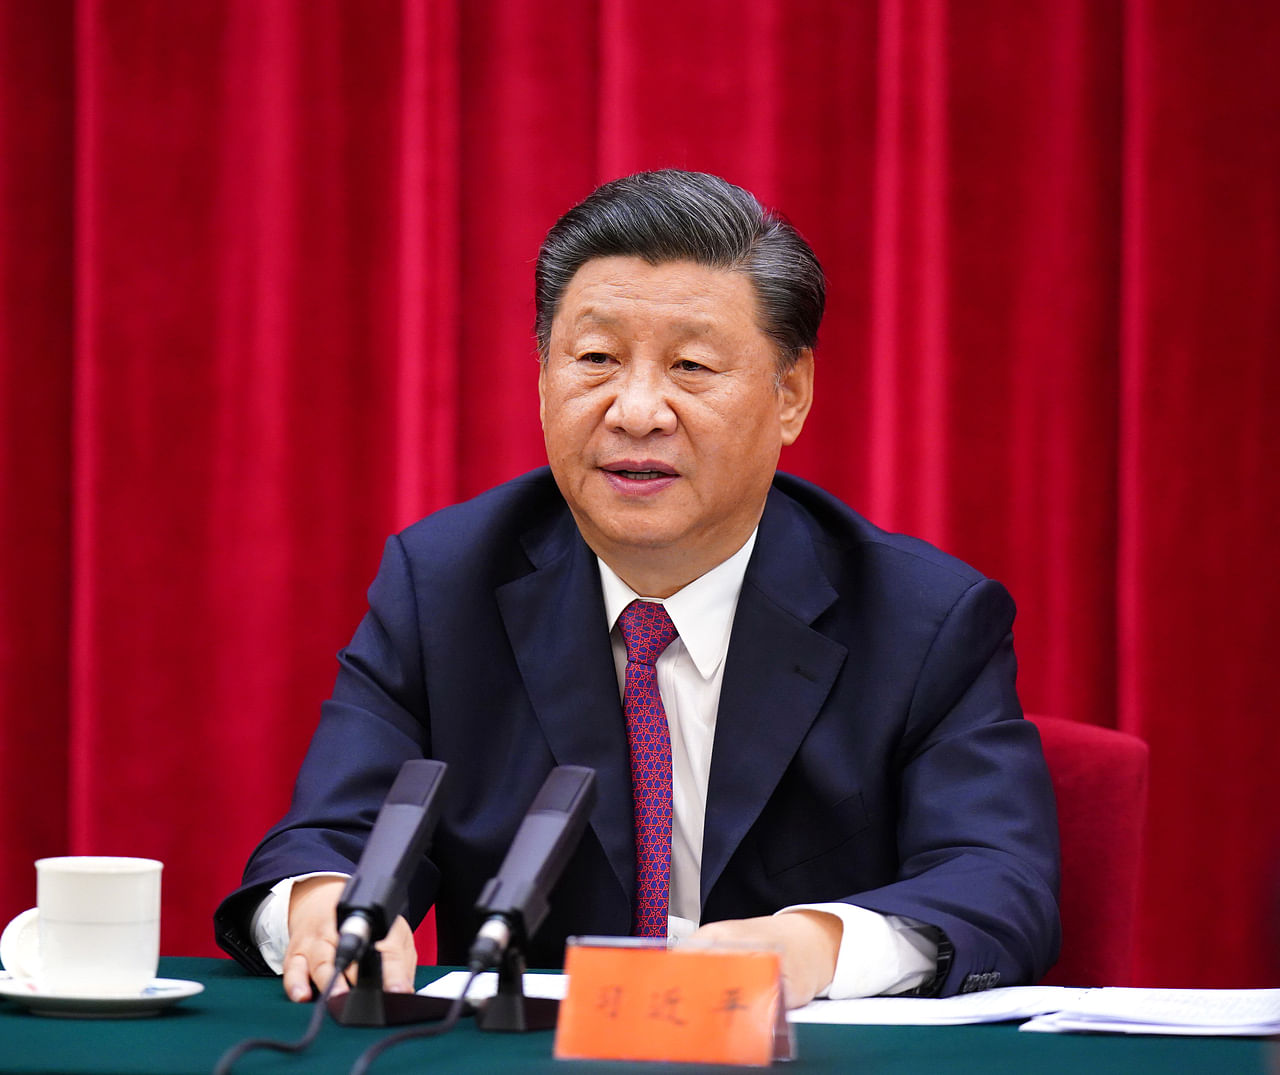 President Xi Jinping Outlines Areas Where China Will Never Accept Foreign Interference East Asia News Top Stories The Straits Times